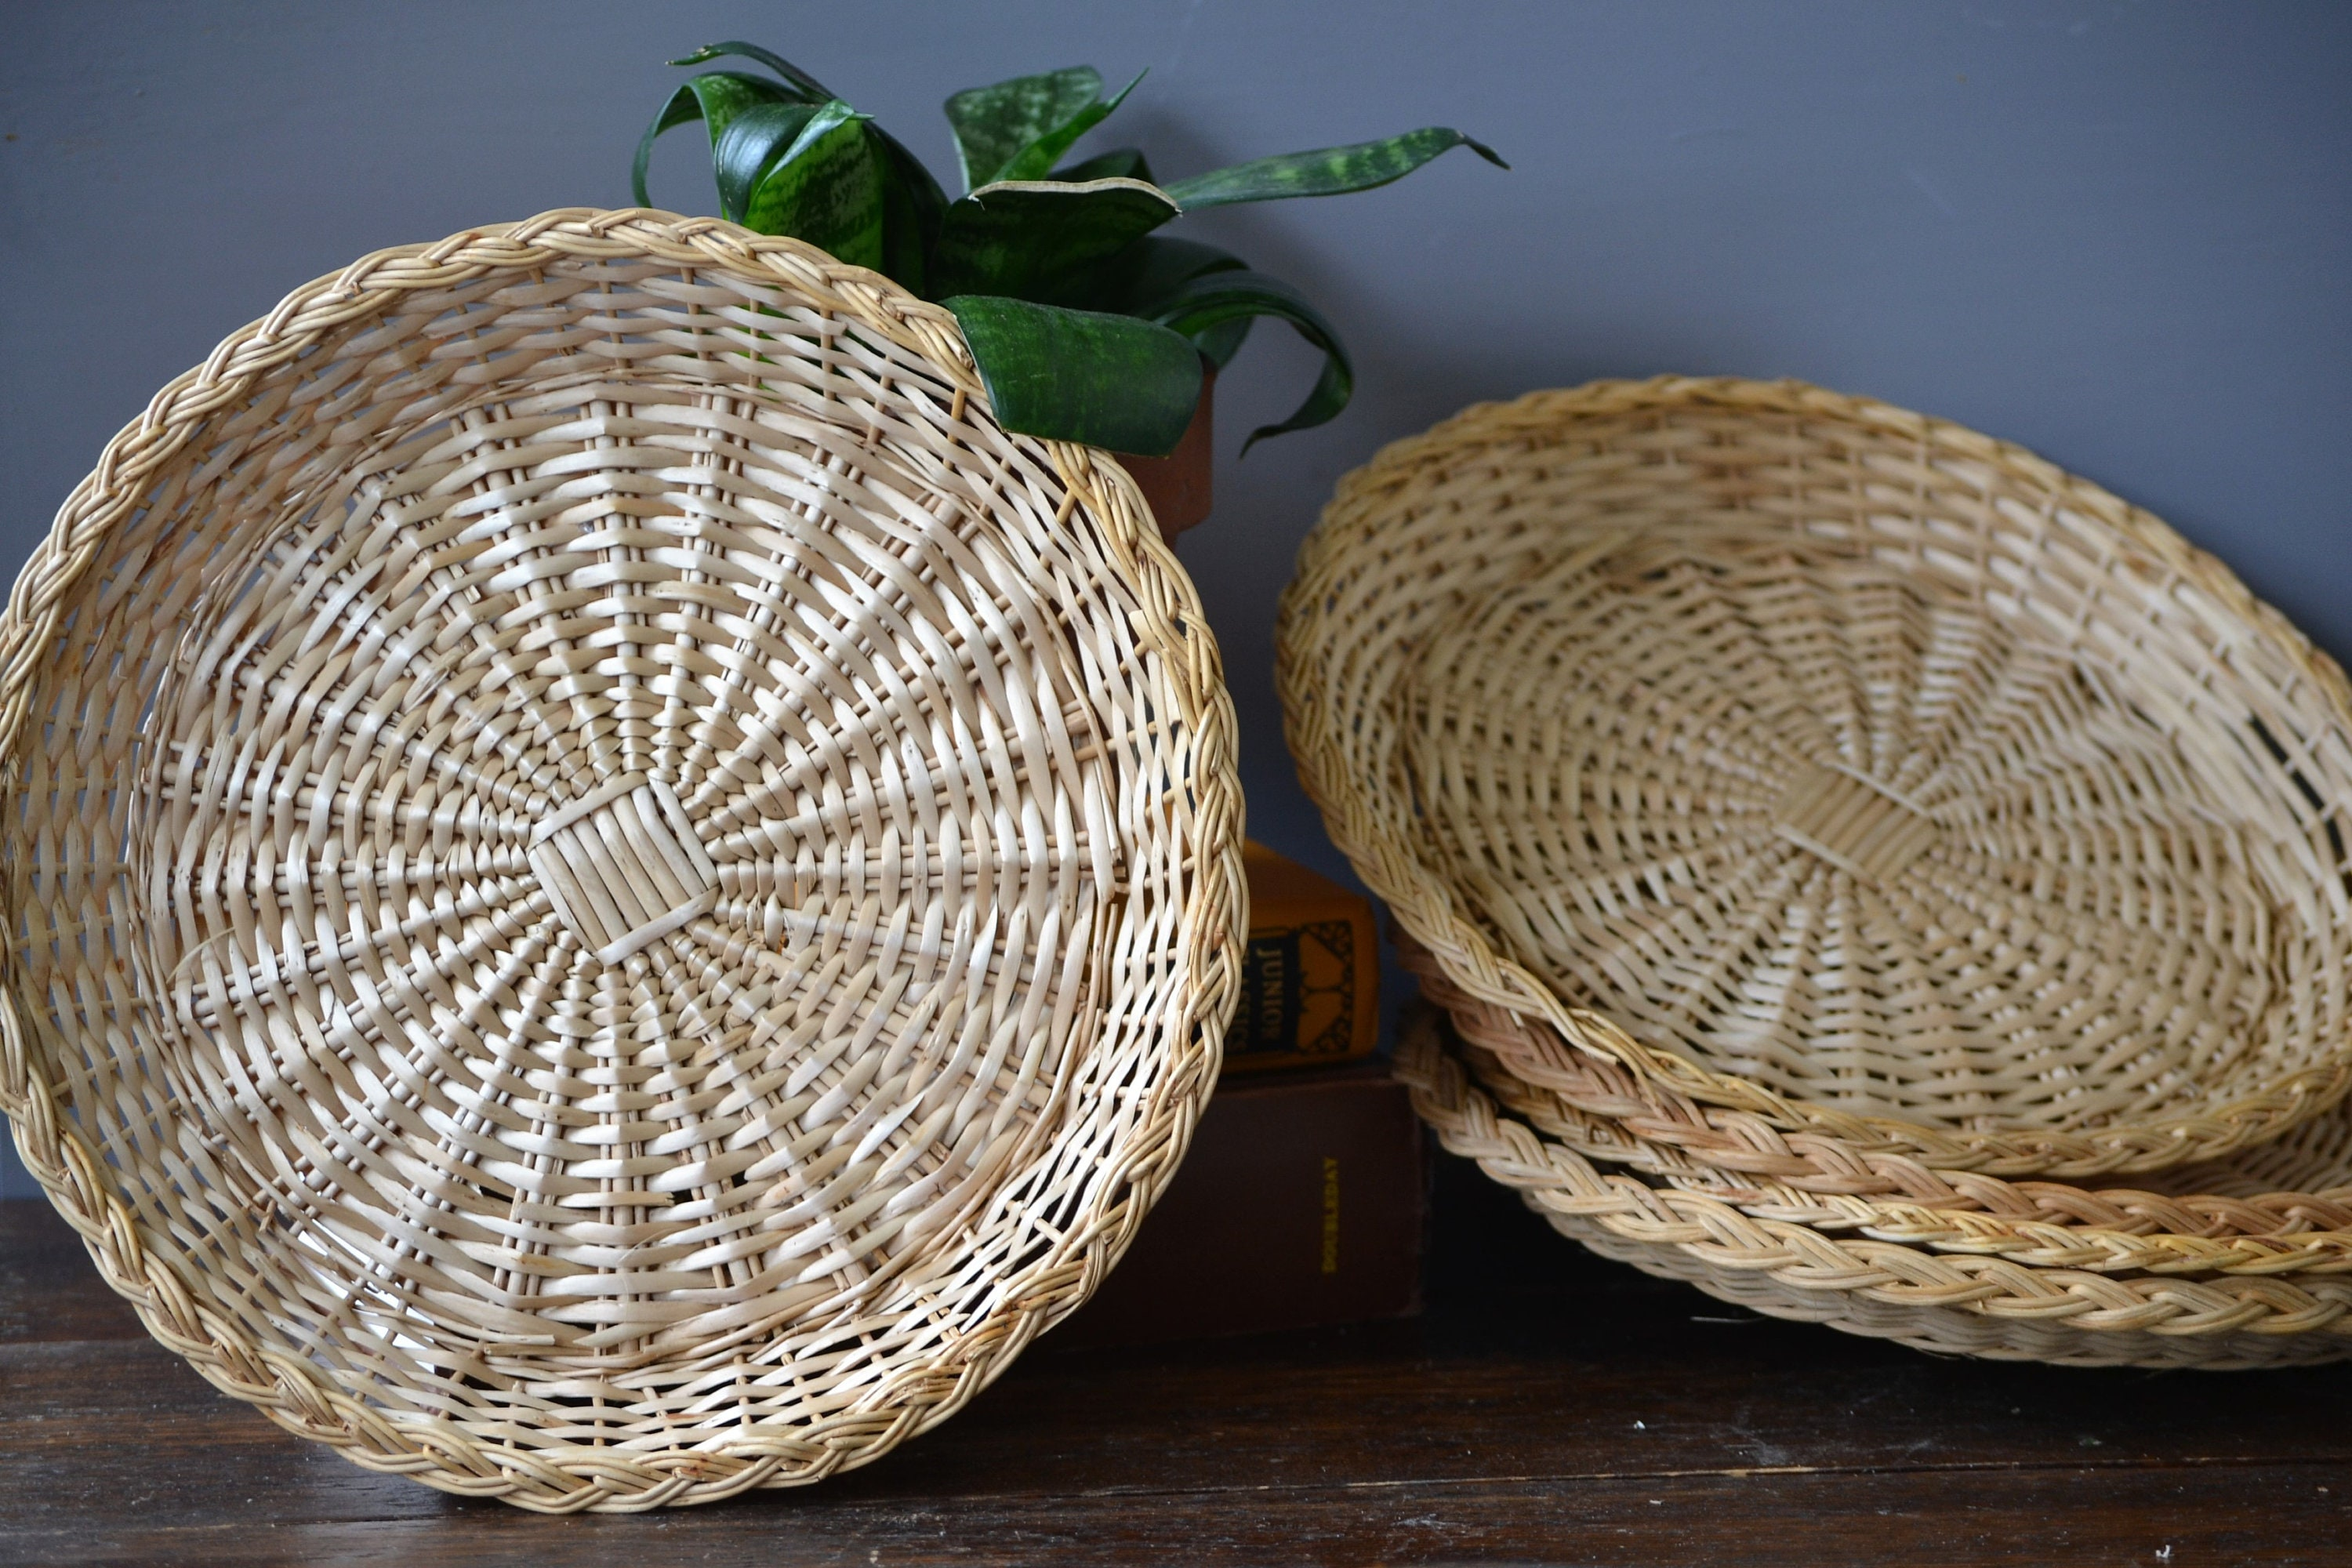 Five Wicker Paper Plate Holders Rattan Wall Decor Picnic Supply